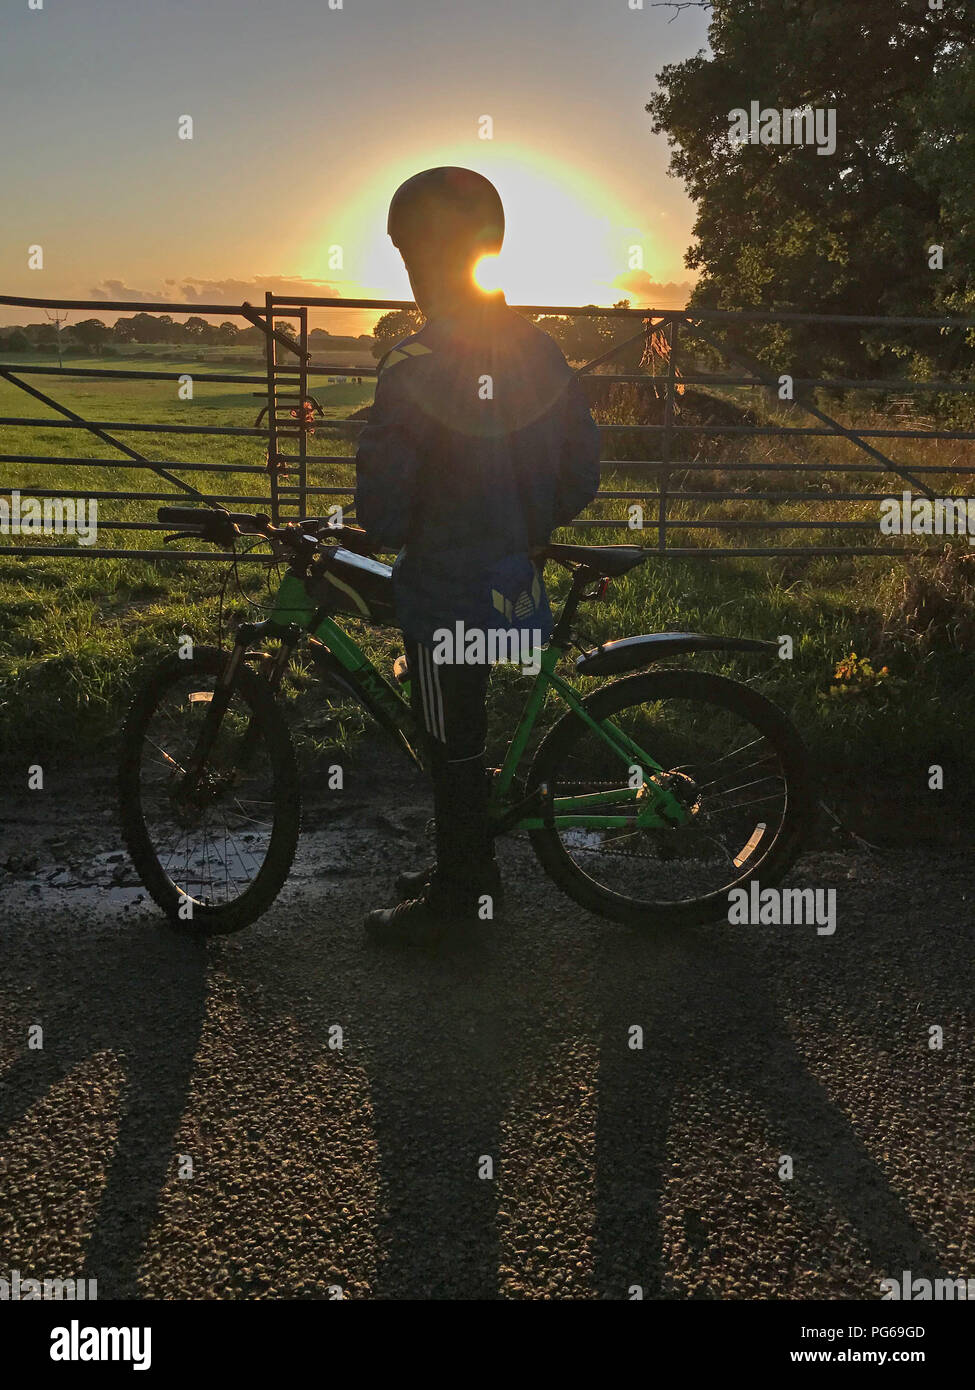 Sunset behind Youth on bicycle, in countryside, at dusk Stock Photo